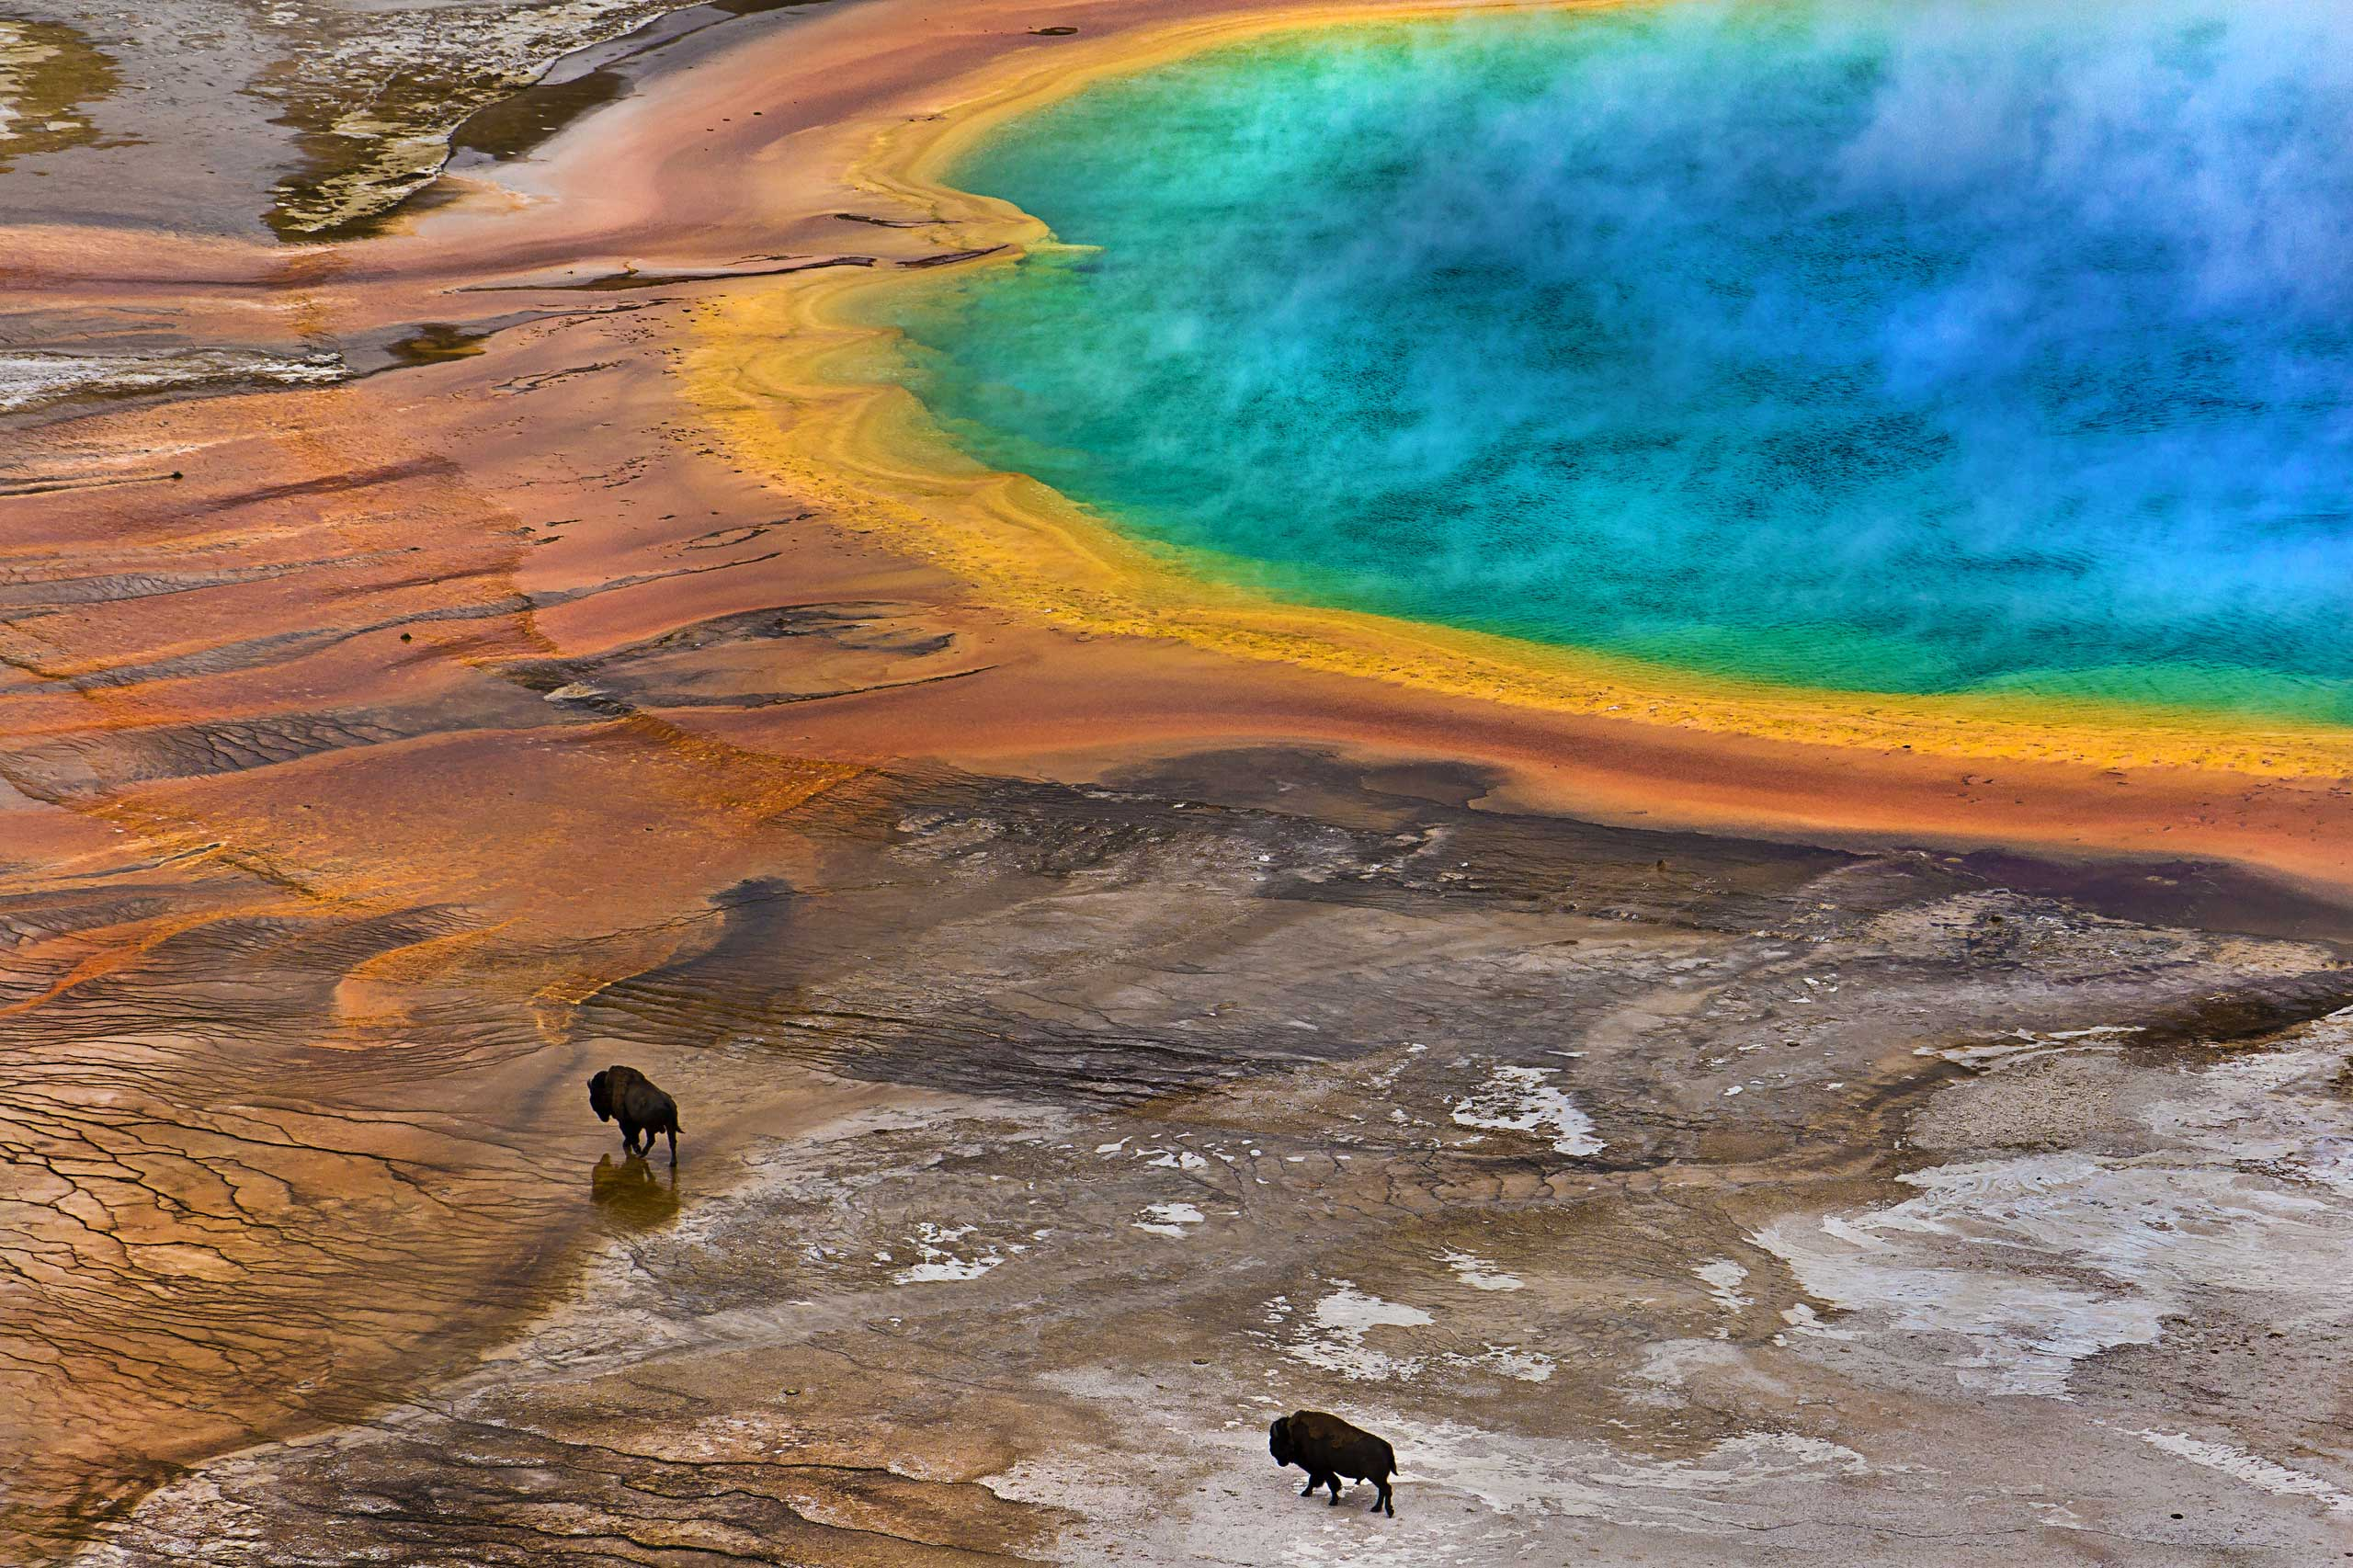 Two Bisons on the Grand Prismatic Spring in Yellowstone National Park, Wyo.